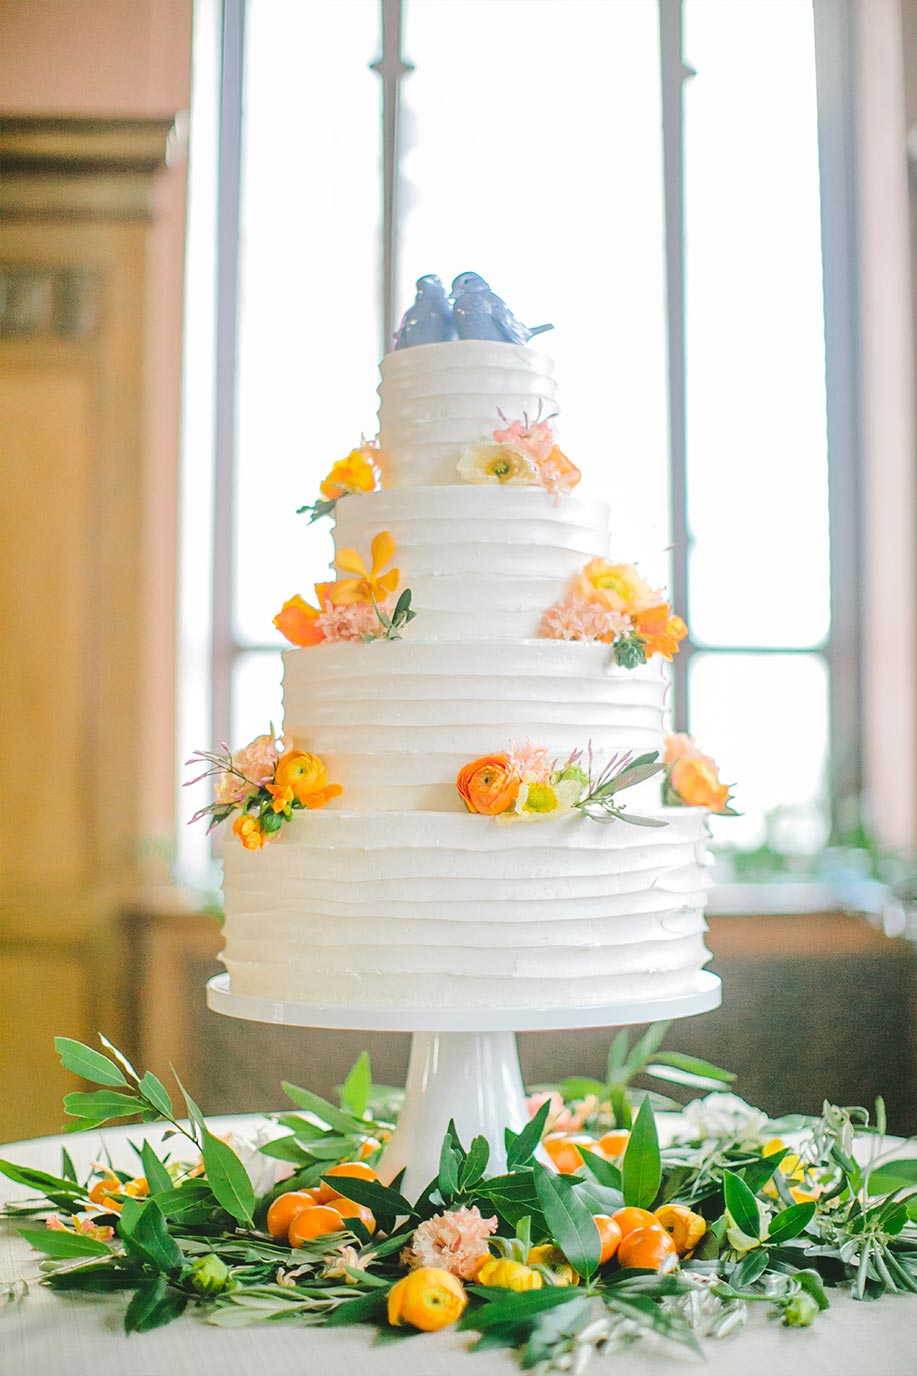 Buttercream wedding cake with orange and yellow flowers and blue and white porcelain topper